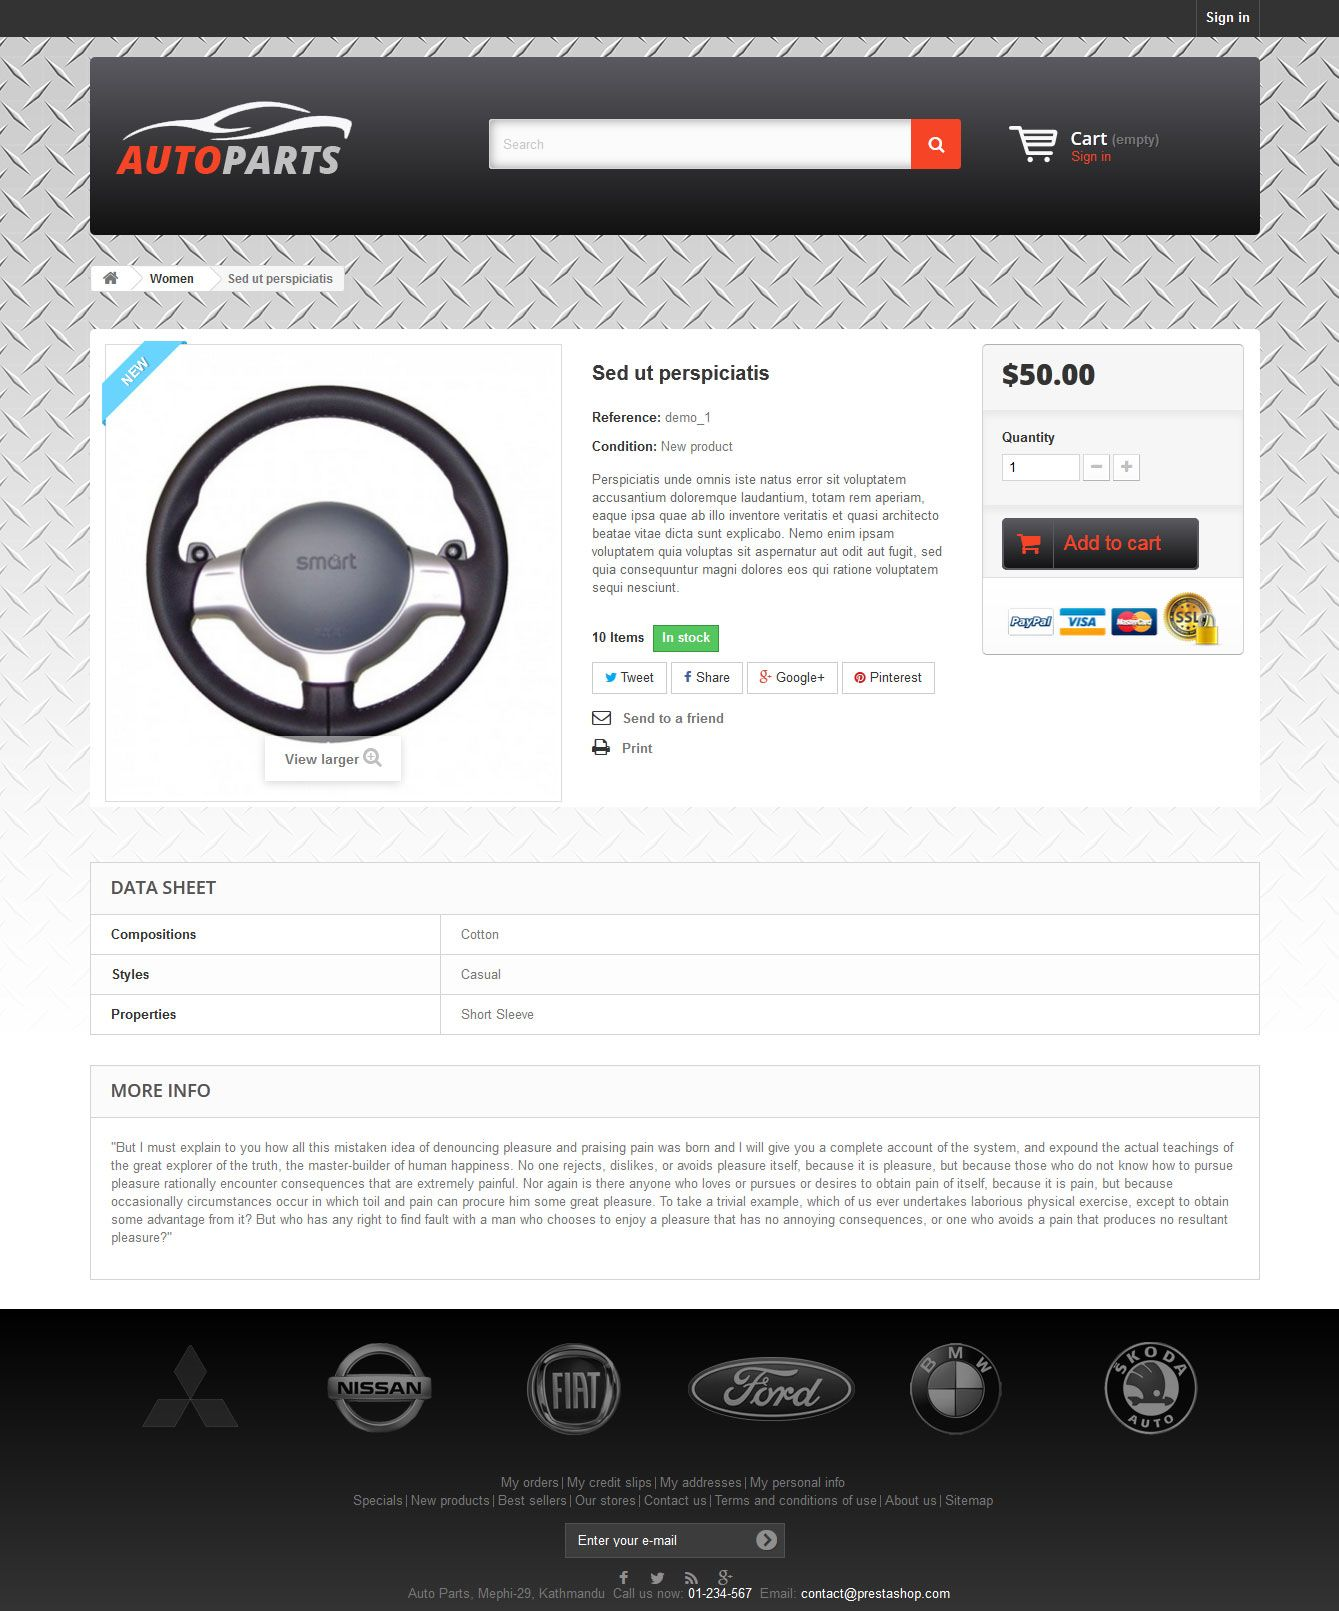 Auto Parts - PrestaShop Theme Screenshot 3